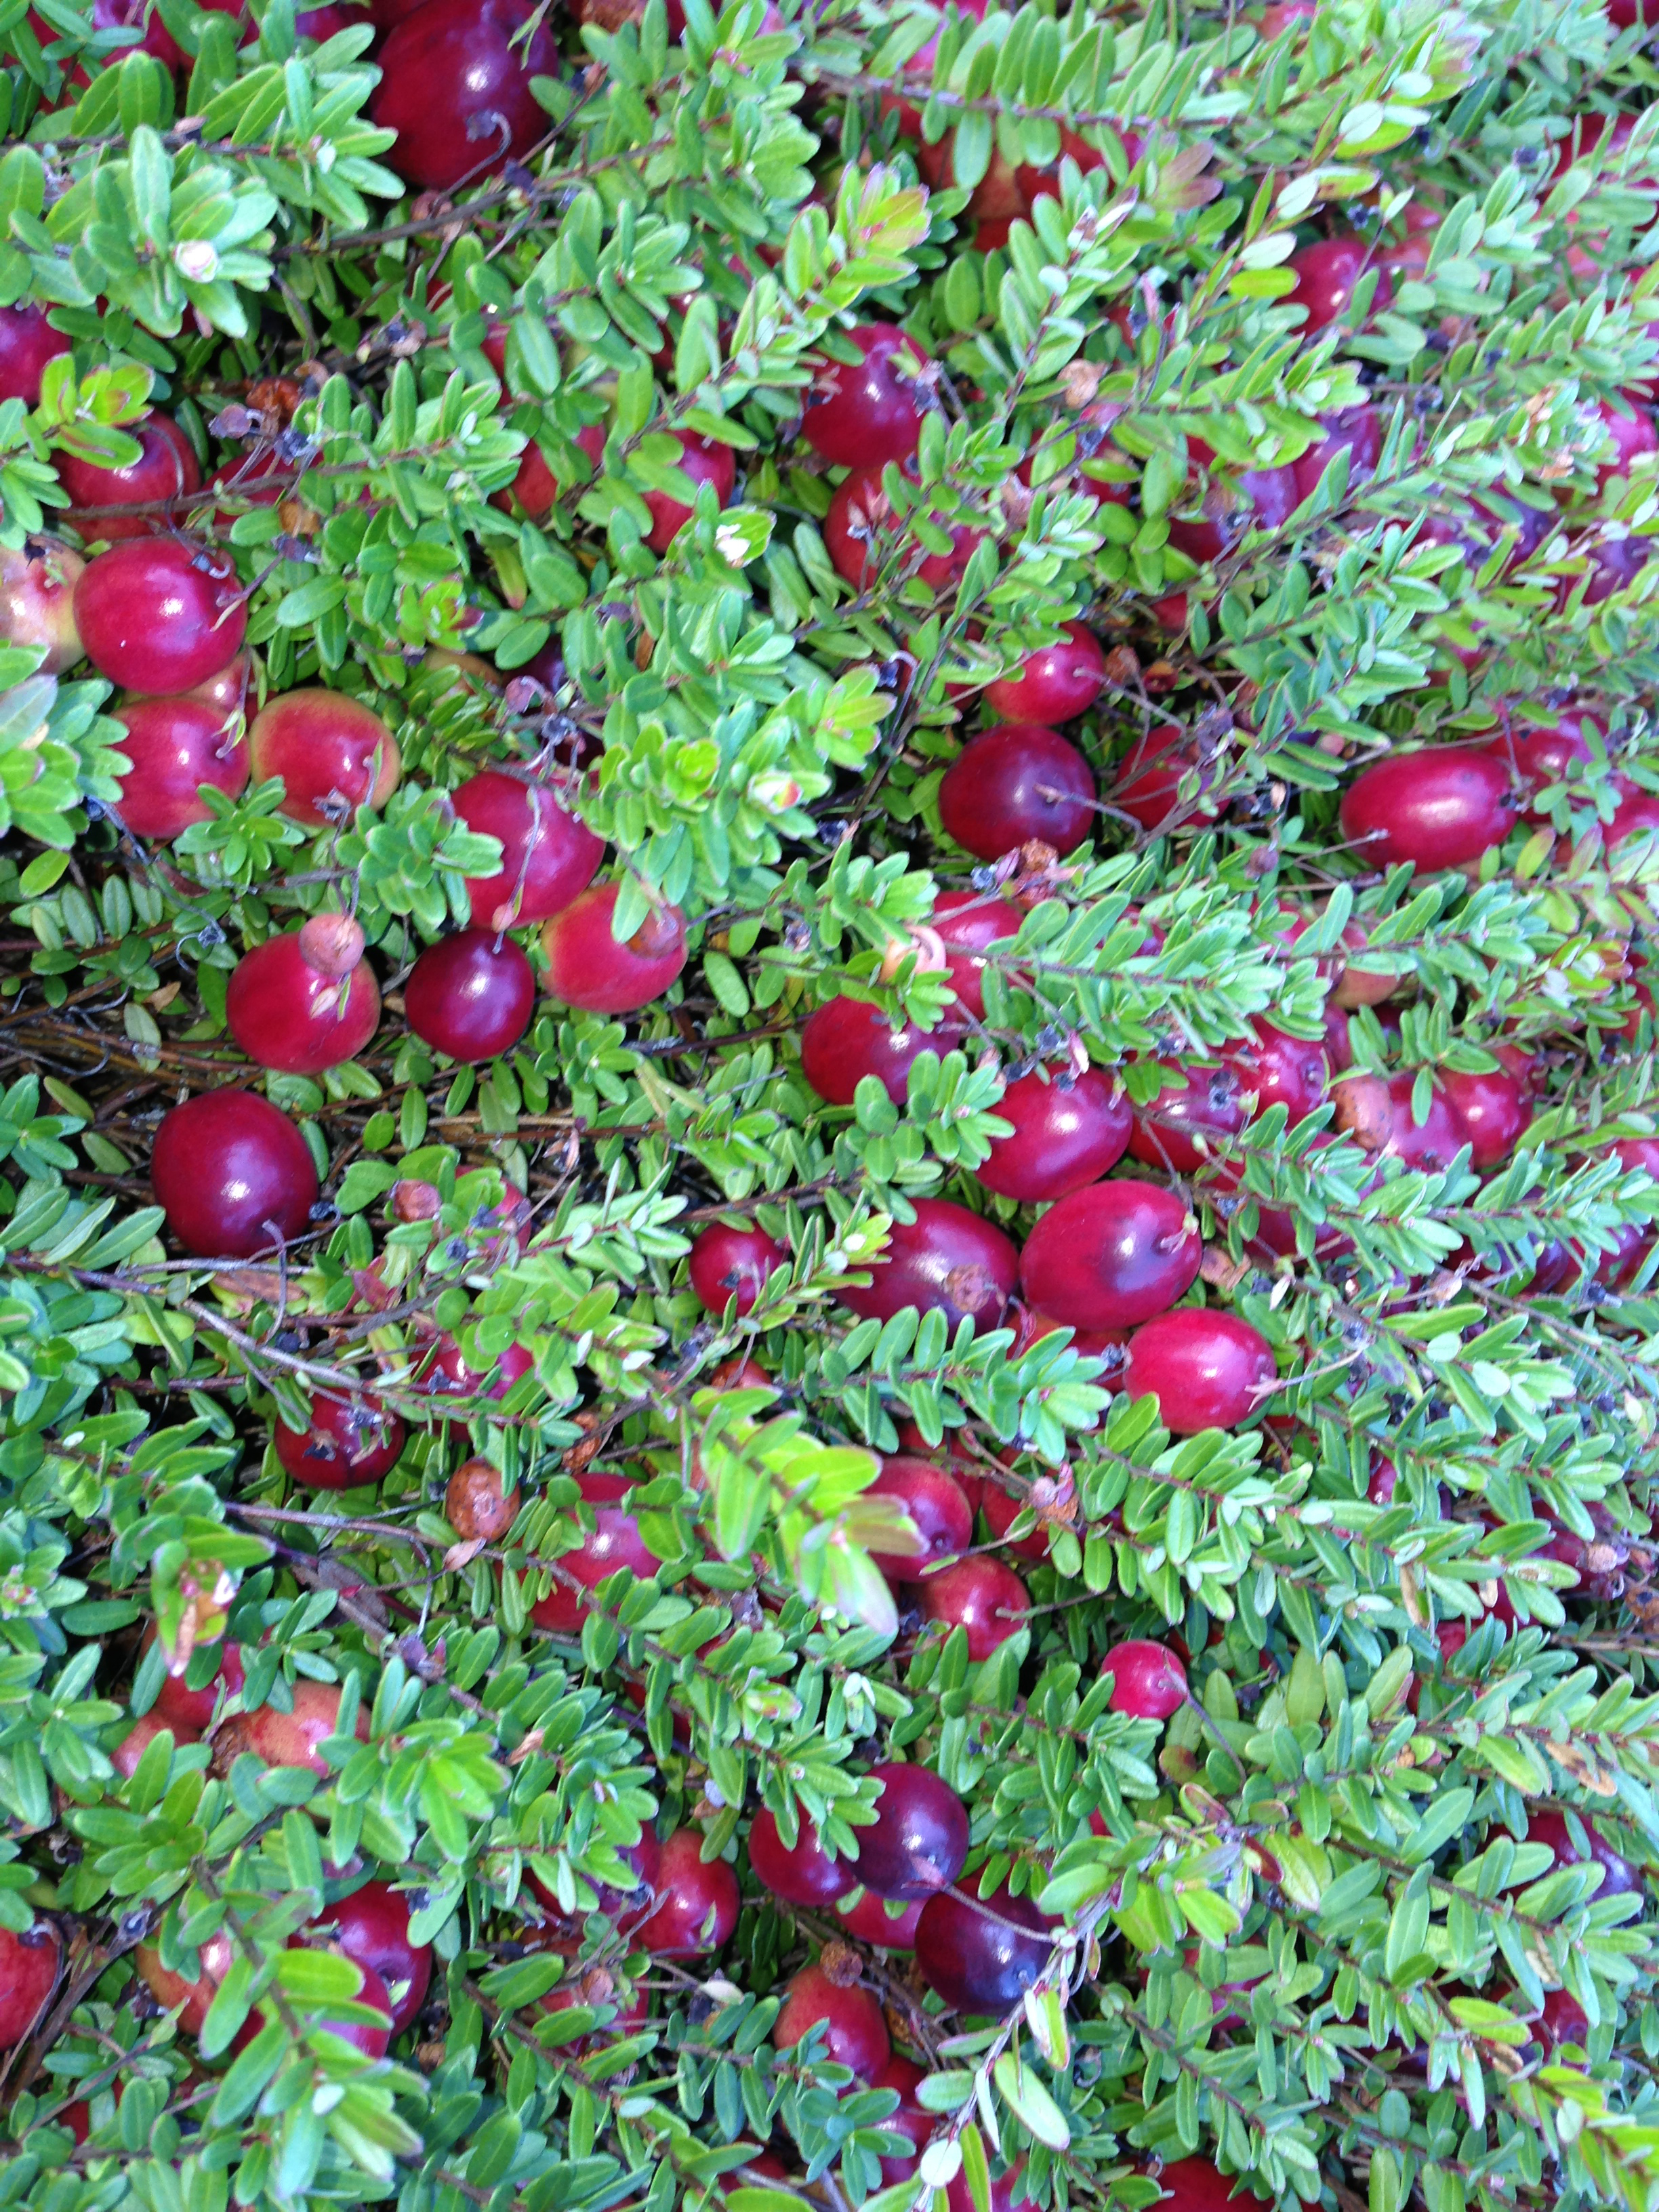 Ripe berries on the vine ready to be picked at Mayflower Cranberries in Plympton, Mass